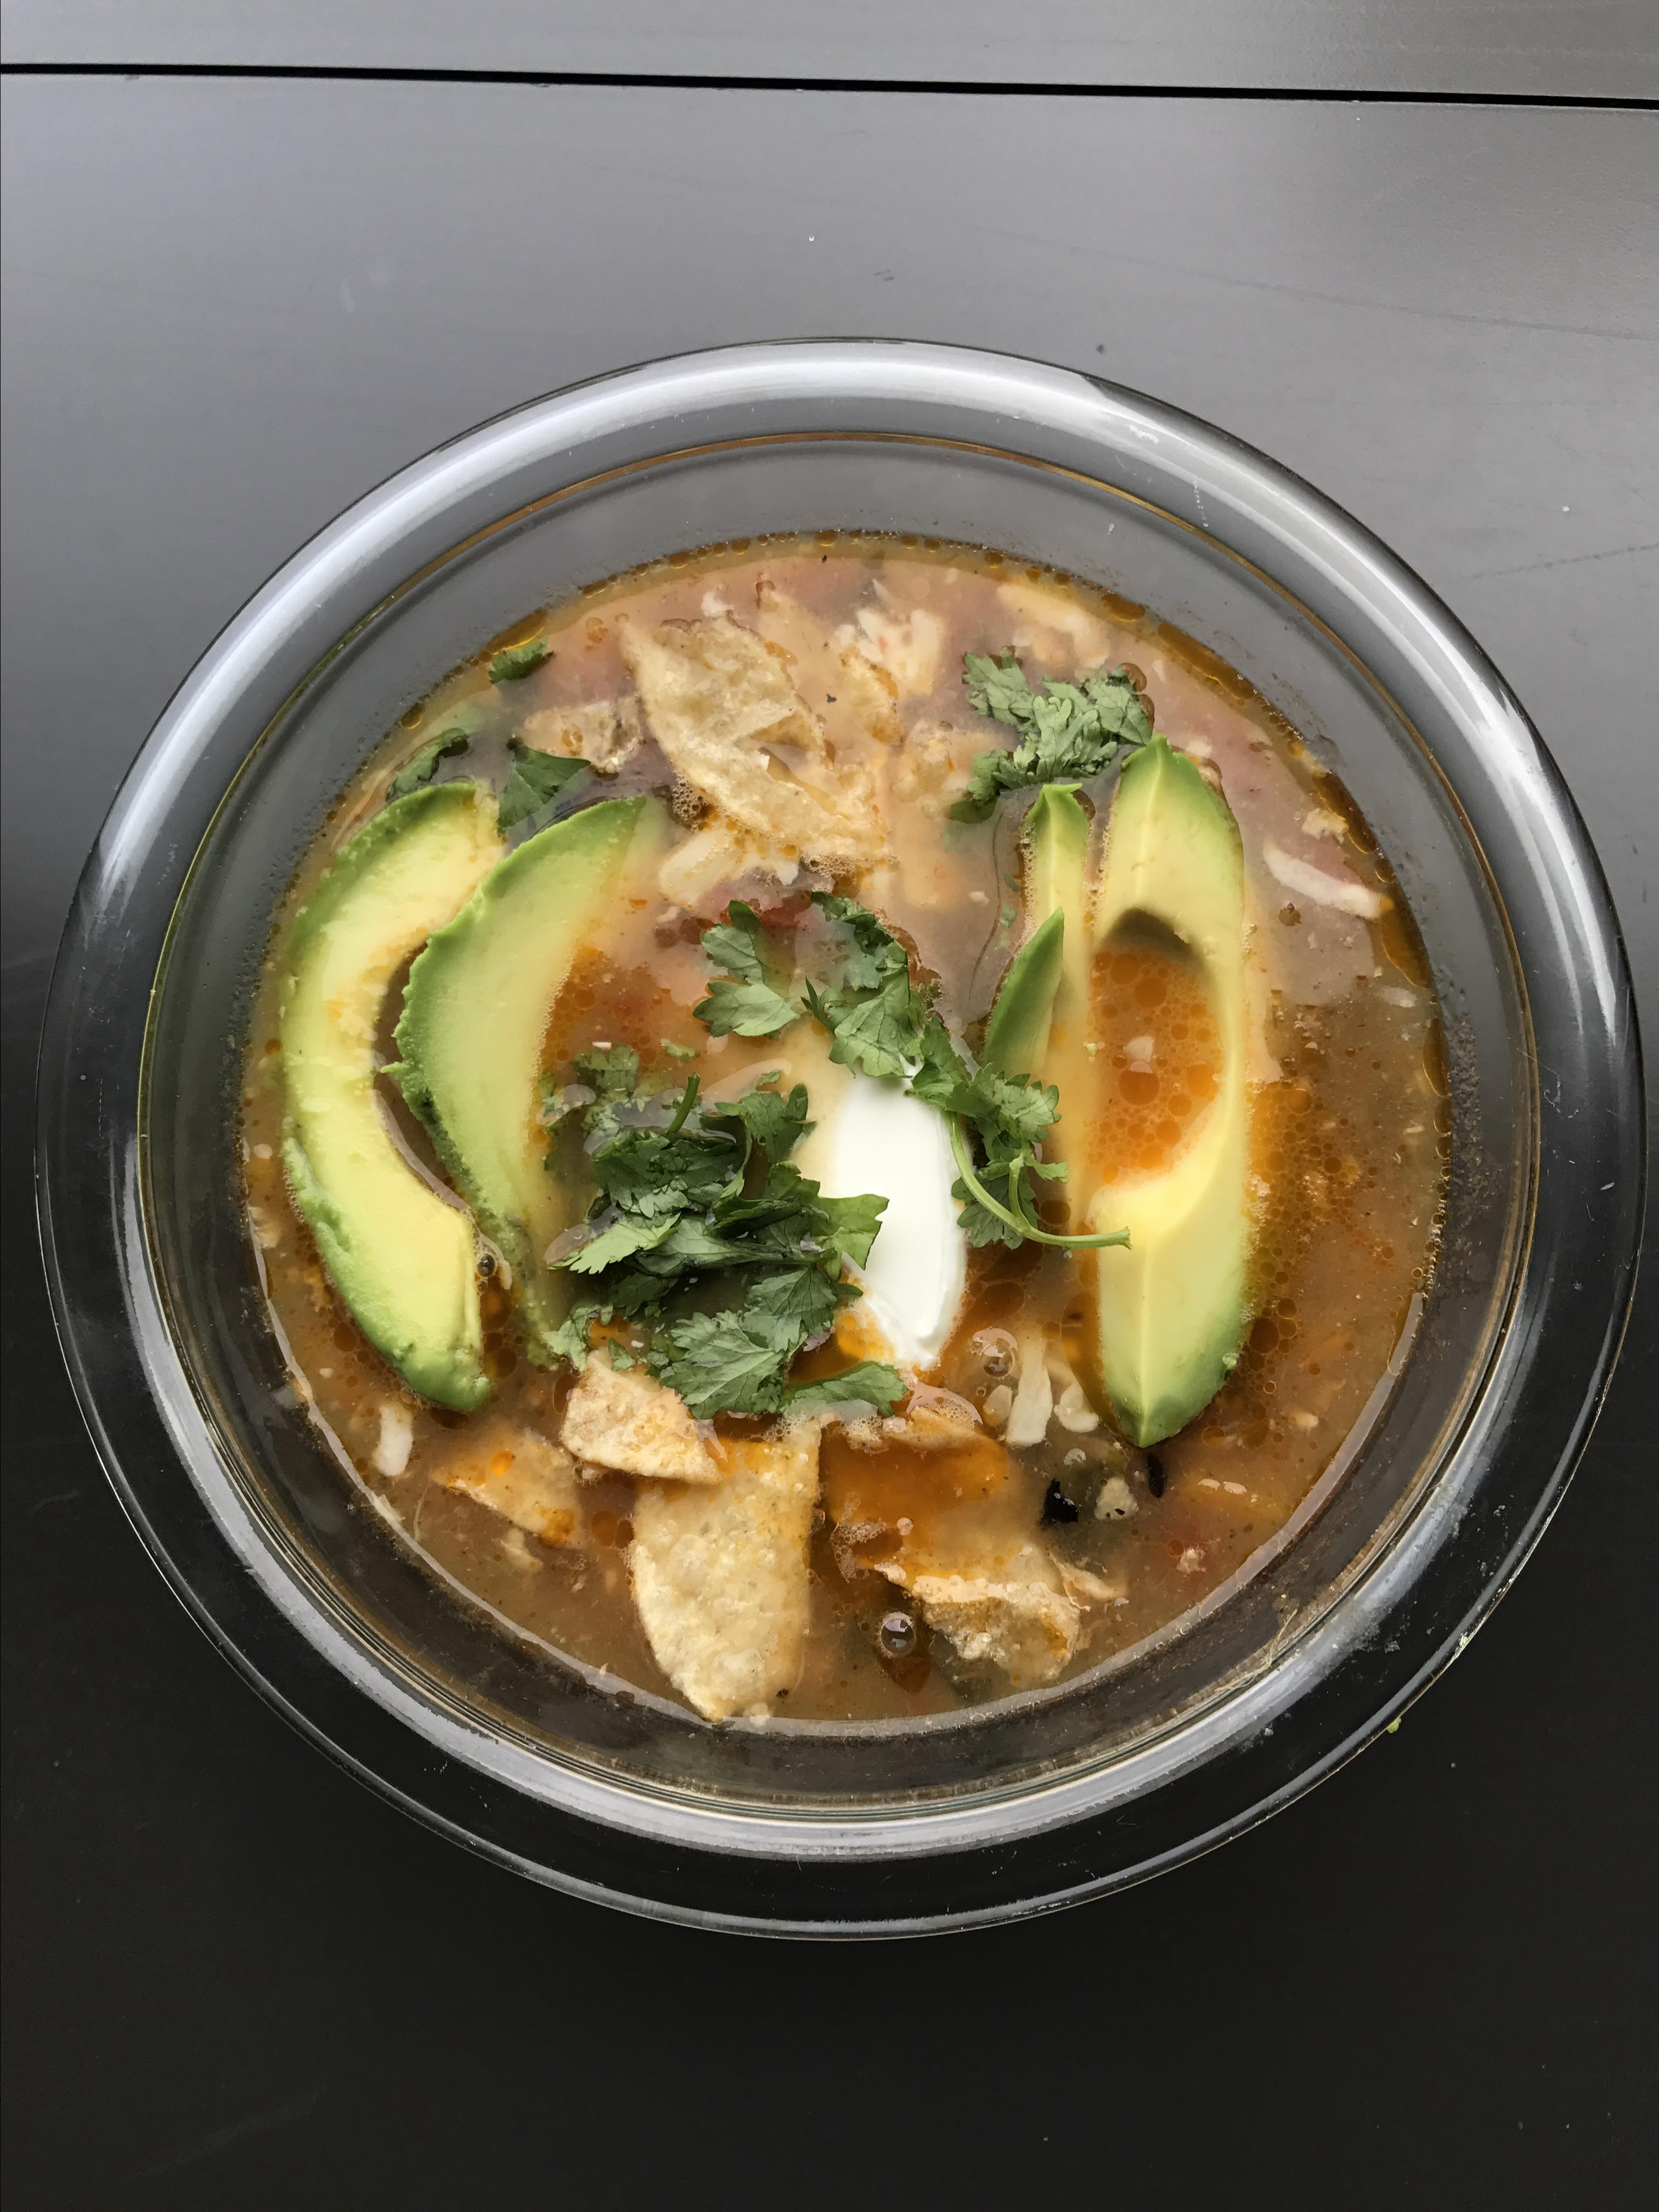 """Here's a hearty version of chicken tortilla soup with layers of flavors, starring veggies, herbs, black beans, and lime juice. """"Top soup with avocado, pepper Jack cheese, fresh cilantro, sour cream, crumbled tortilla chips, and hot sauce. This is great for freezing!"""" says voraciousgirl."""